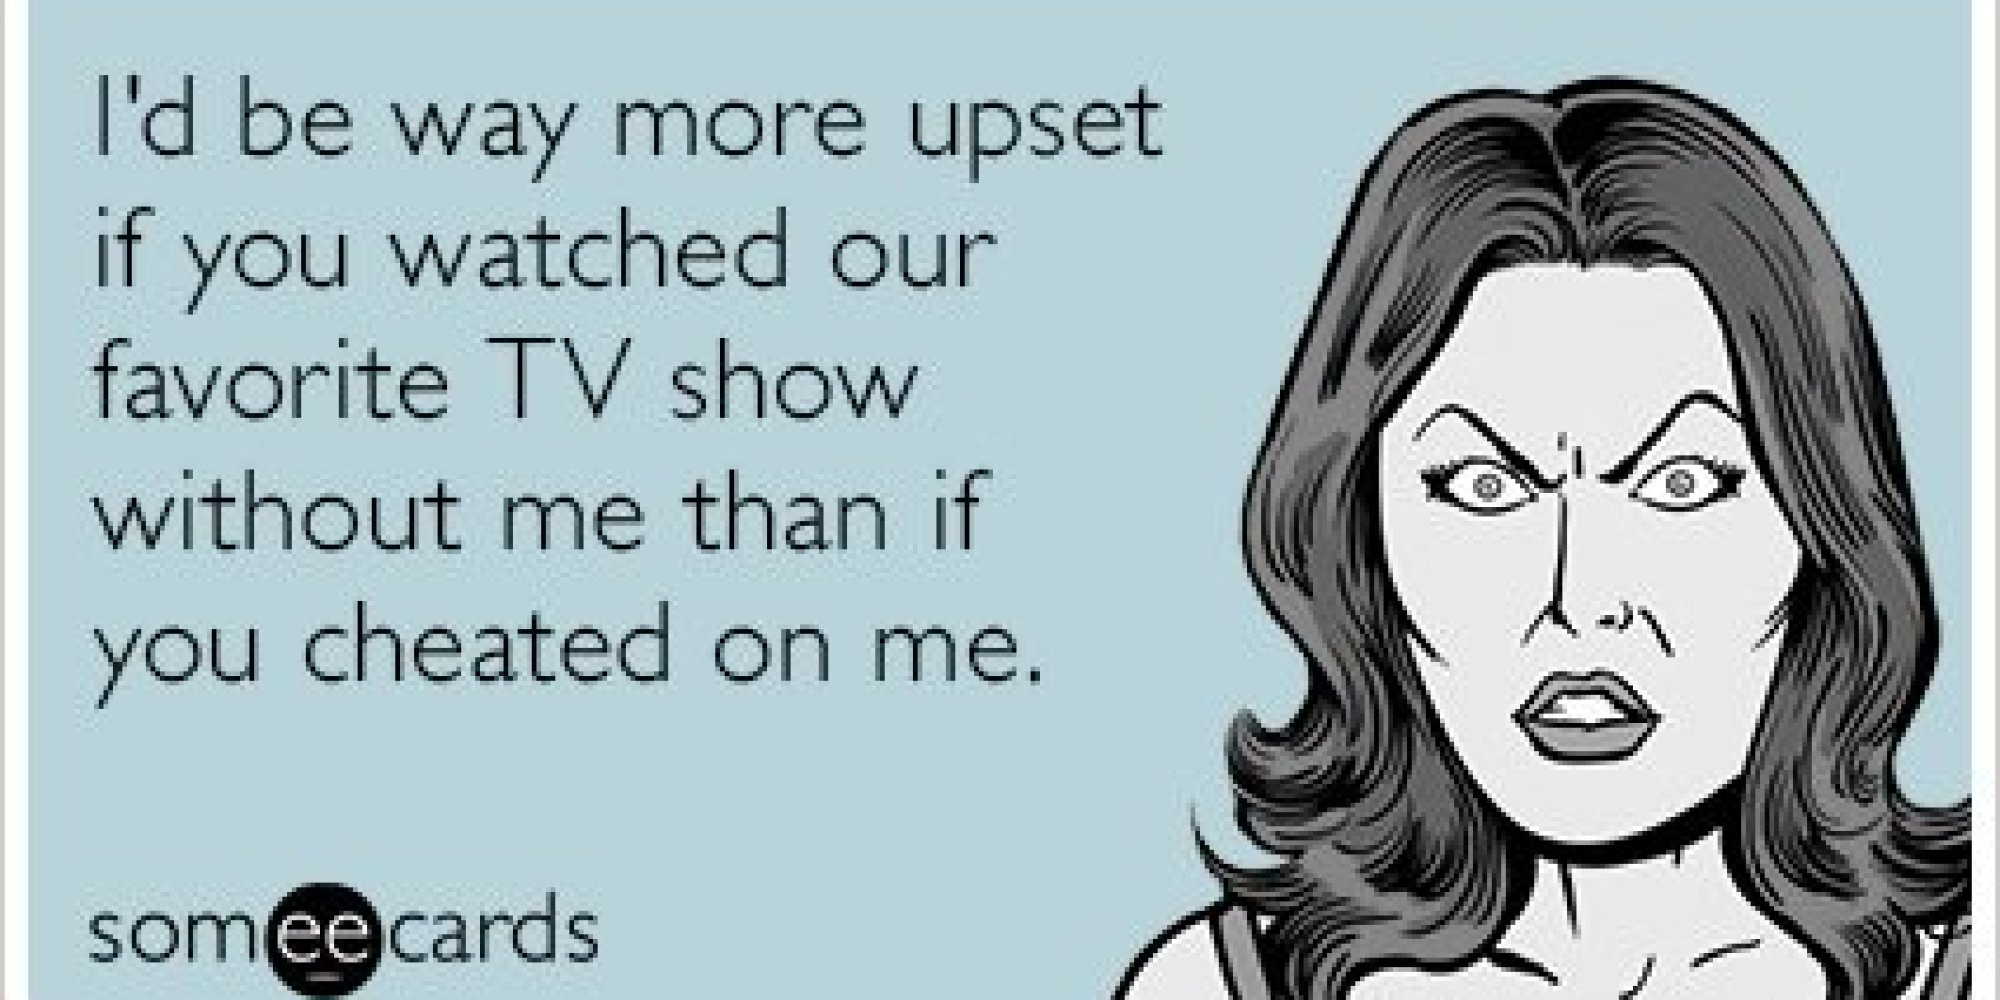 9 Funny Someecards To End The Week With A Laugh